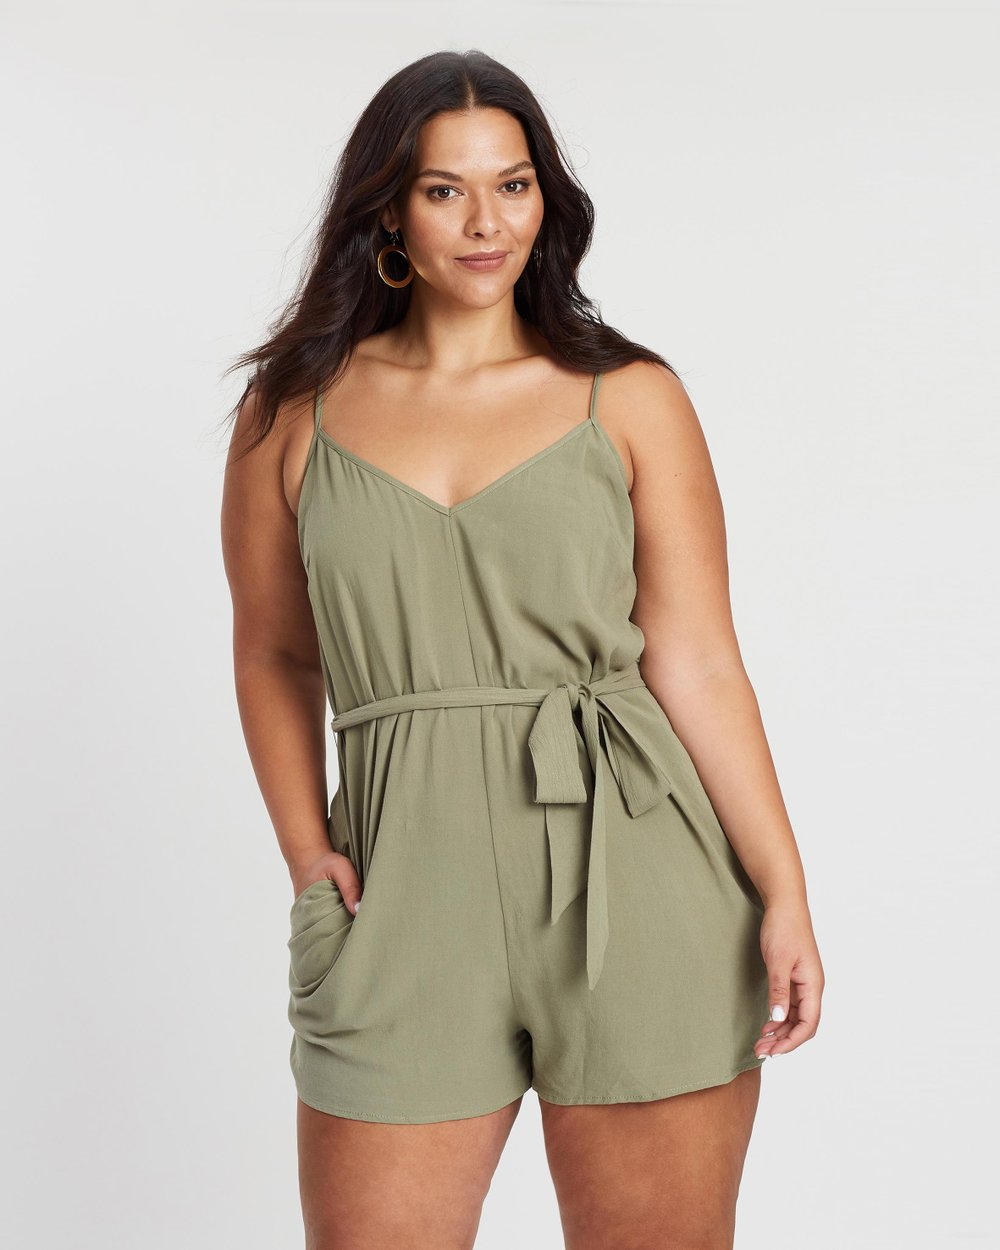 69bfd58ec7 ICONIC EXCLUSIVE - Erica Playsuit by Atmos Here Curvy Online